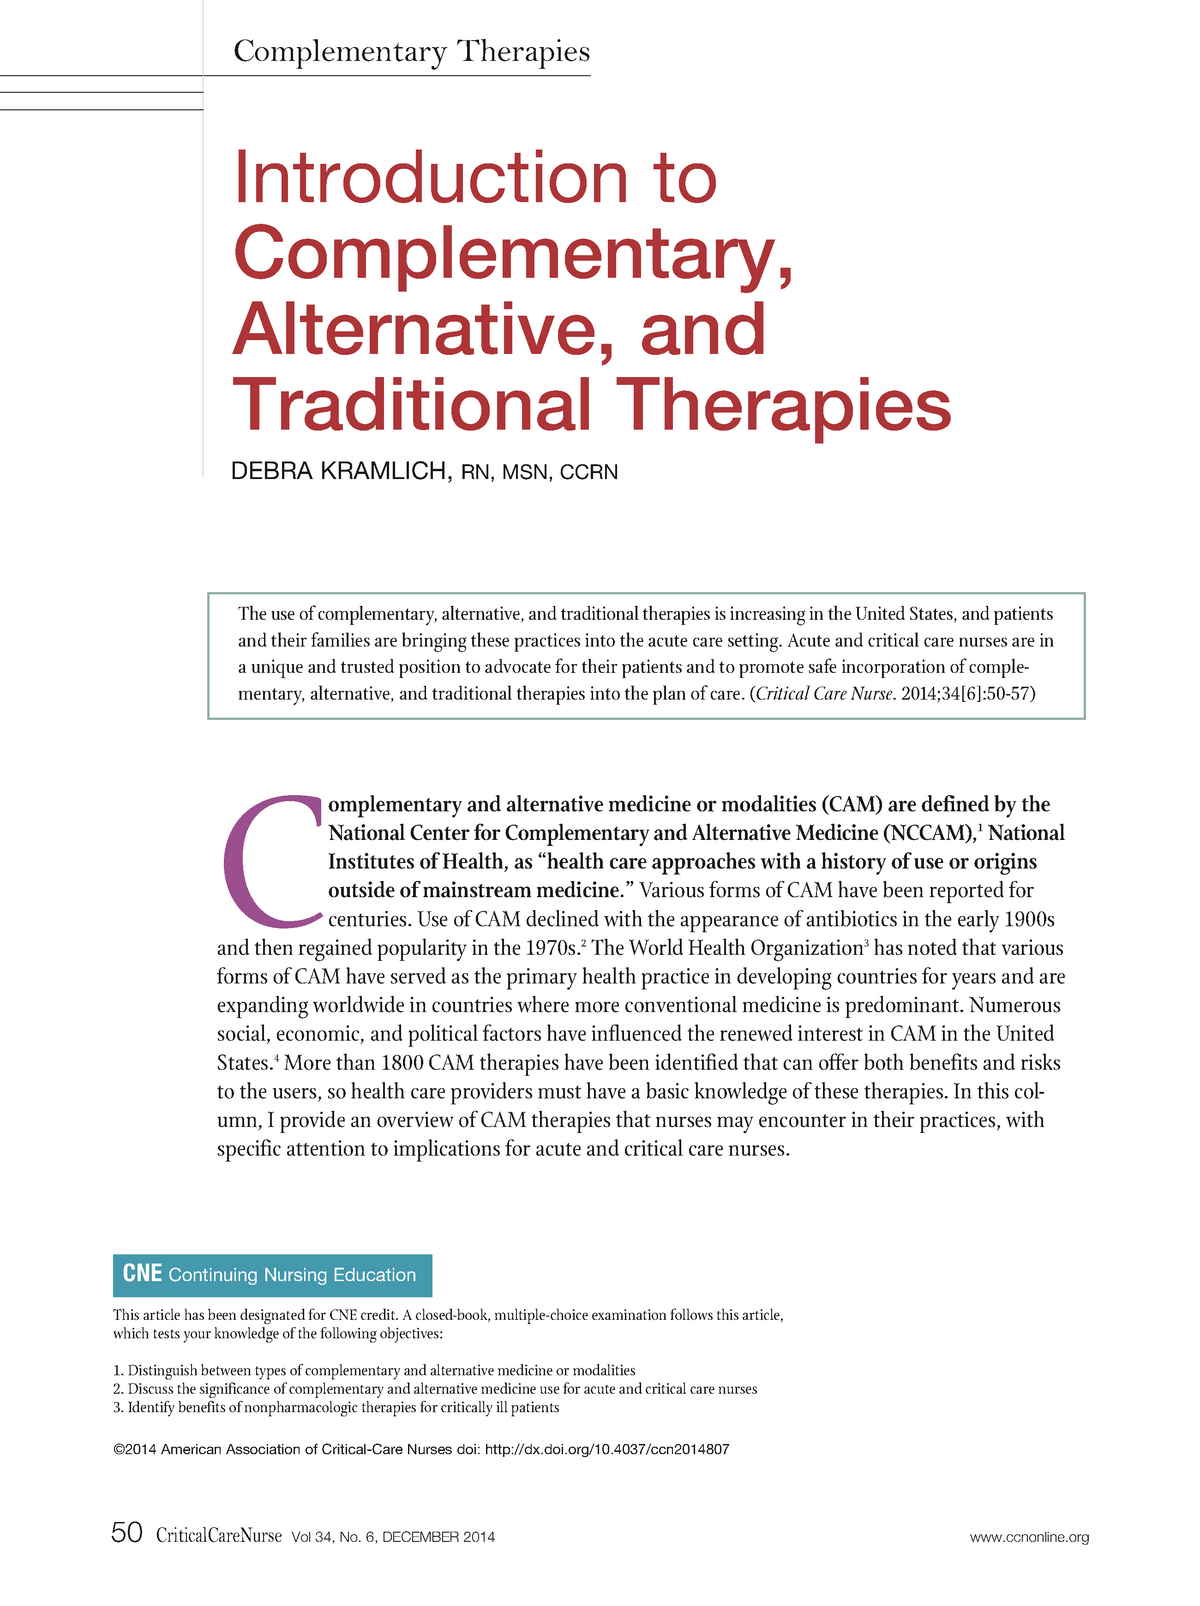 C1463 - Introduction to Complementary, Alternative, and